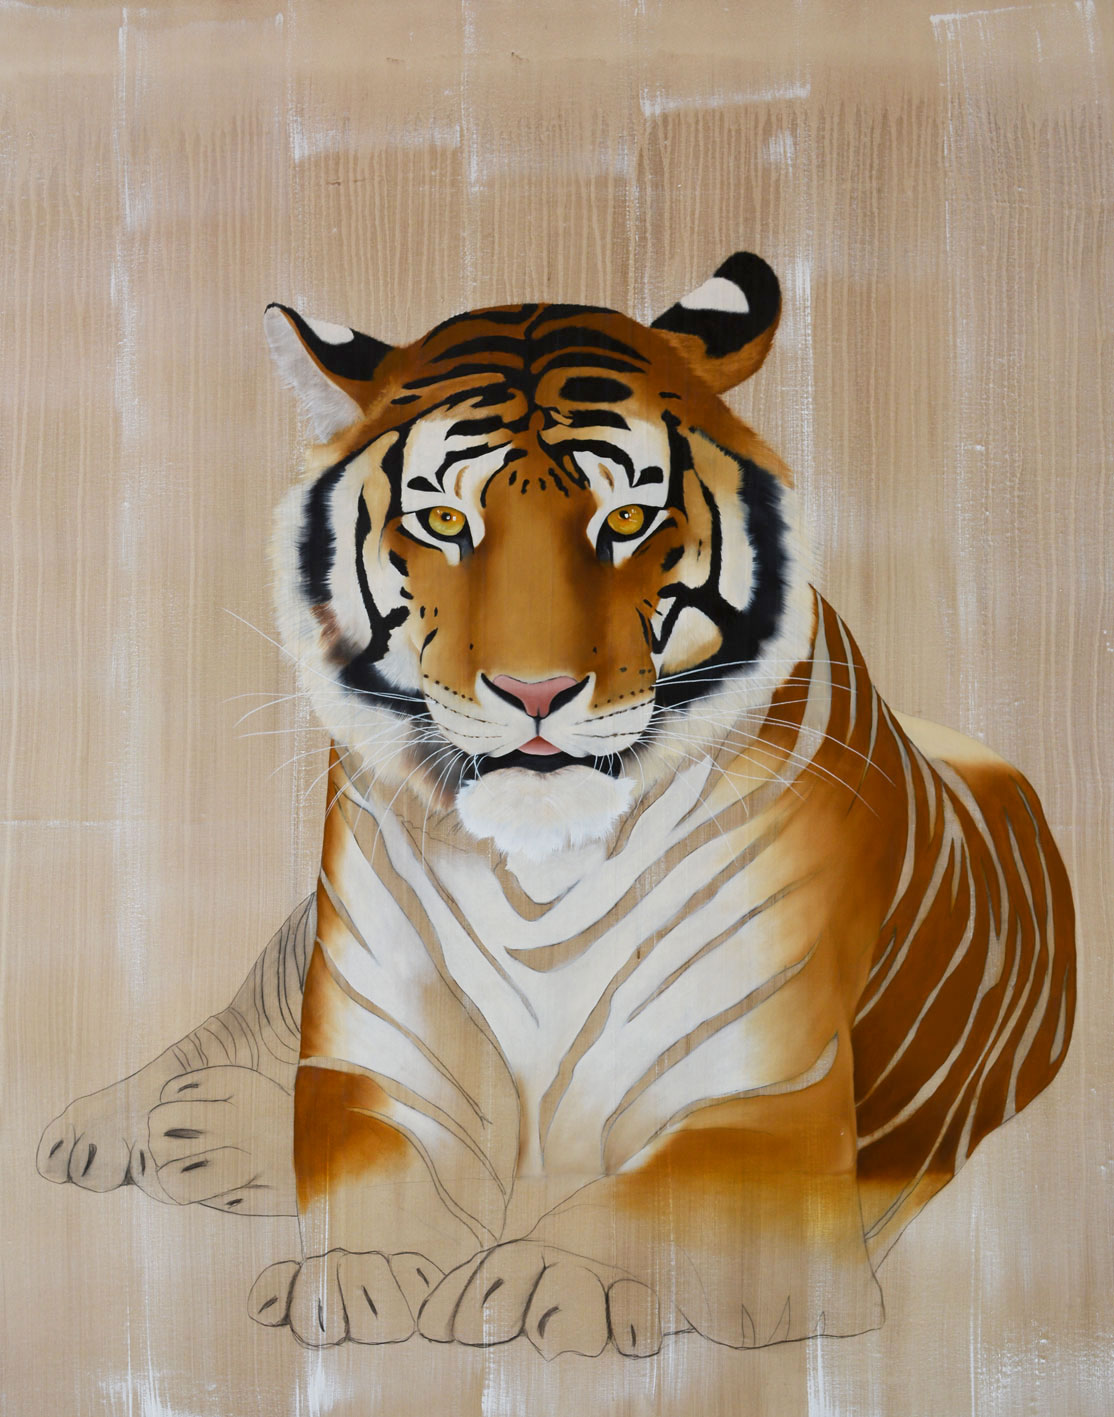 PANTHERA TIGRIS divers Thierry Bisch Contemporary painter animals painting art decoration nature biodiversity conservation